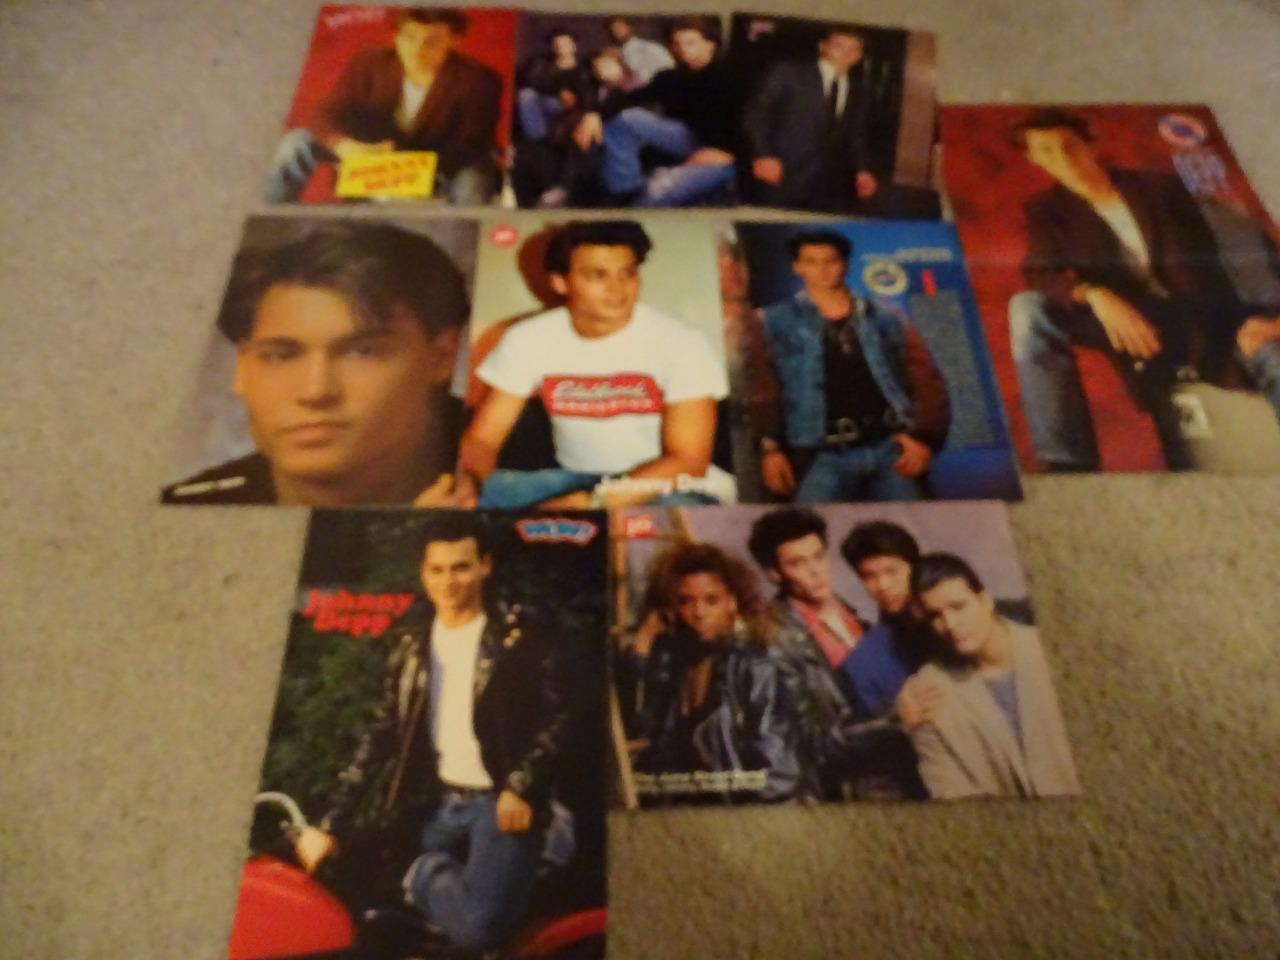 Johnny Depp teen magazine pinup clippings Teen Beat Bop 16 magazine Super Young